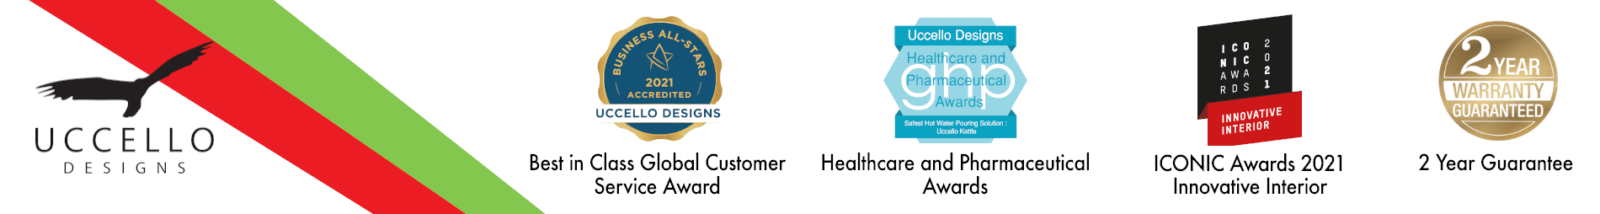 Uccello Designs Awards - Best in Class - Healthcare and Pharmaceutical - ICONIC Innovative Interior - 2 Year Guarantee